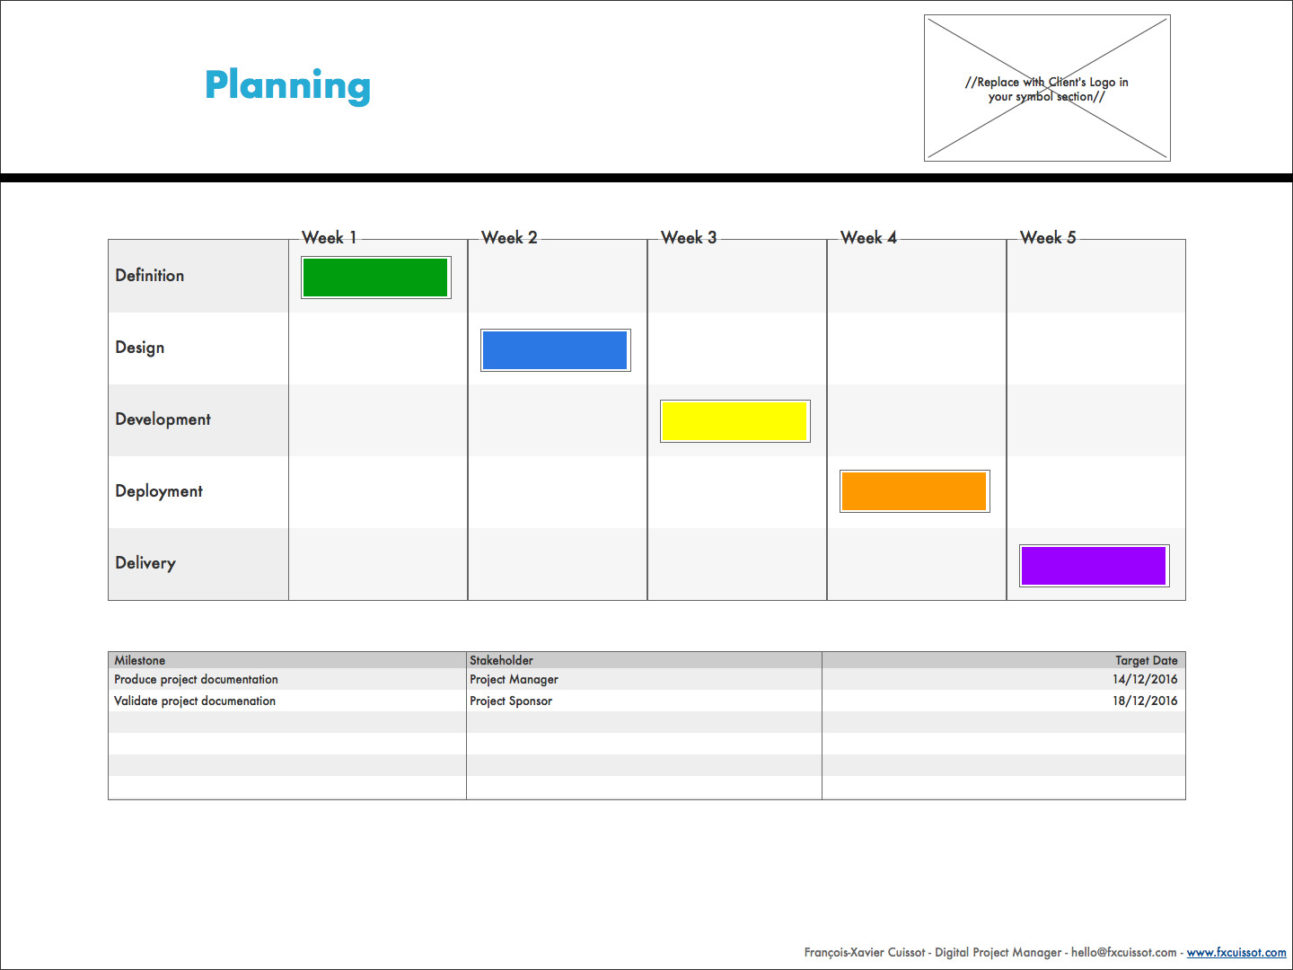 Project Charter Template Balsamiq | Digital Project Management Throughout Project Management Charter Templates